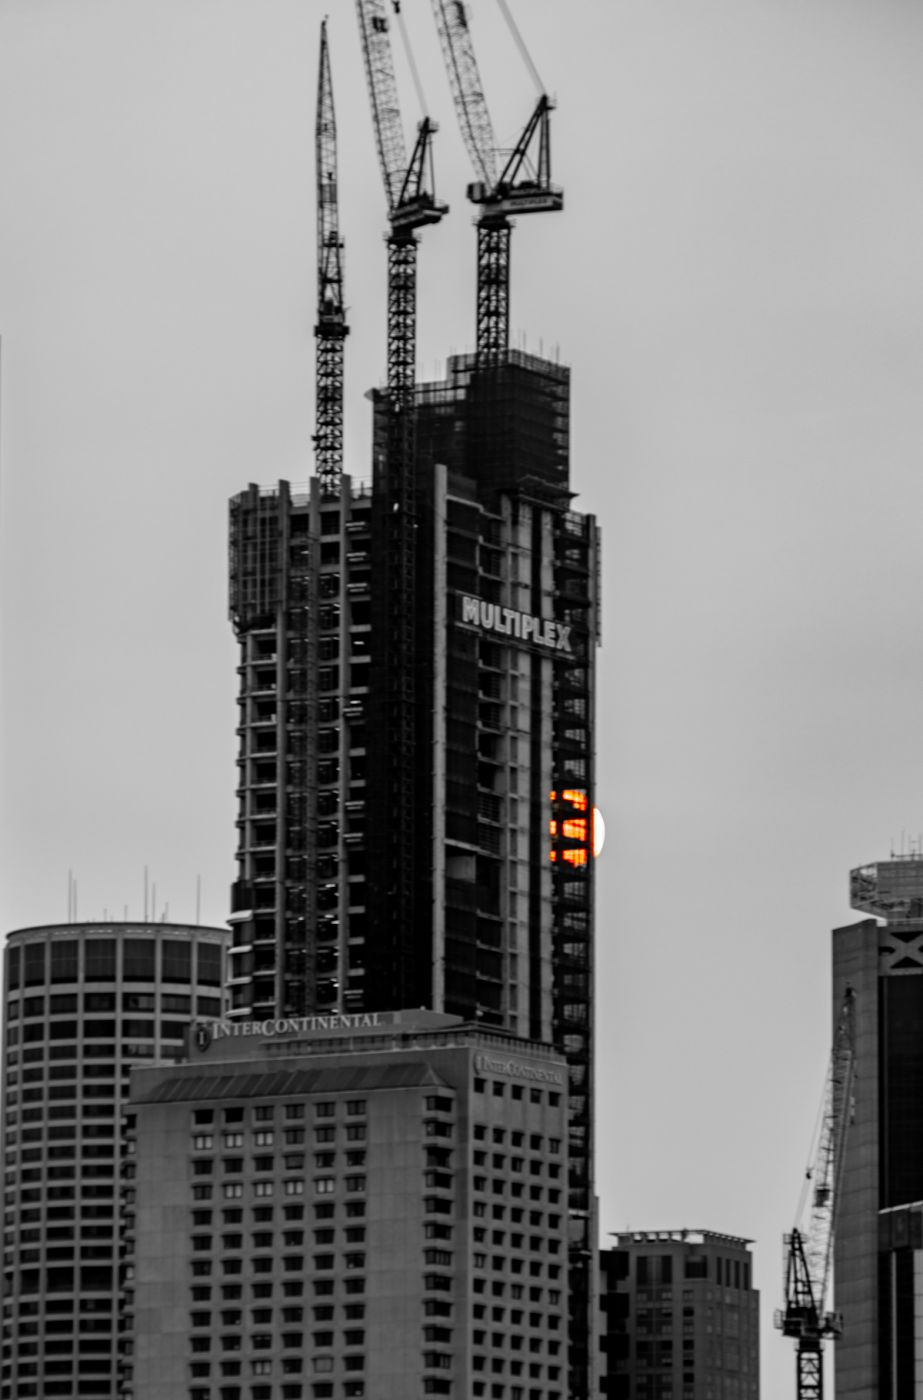 Sun disappearing behind a building Sydney harbour, Australia